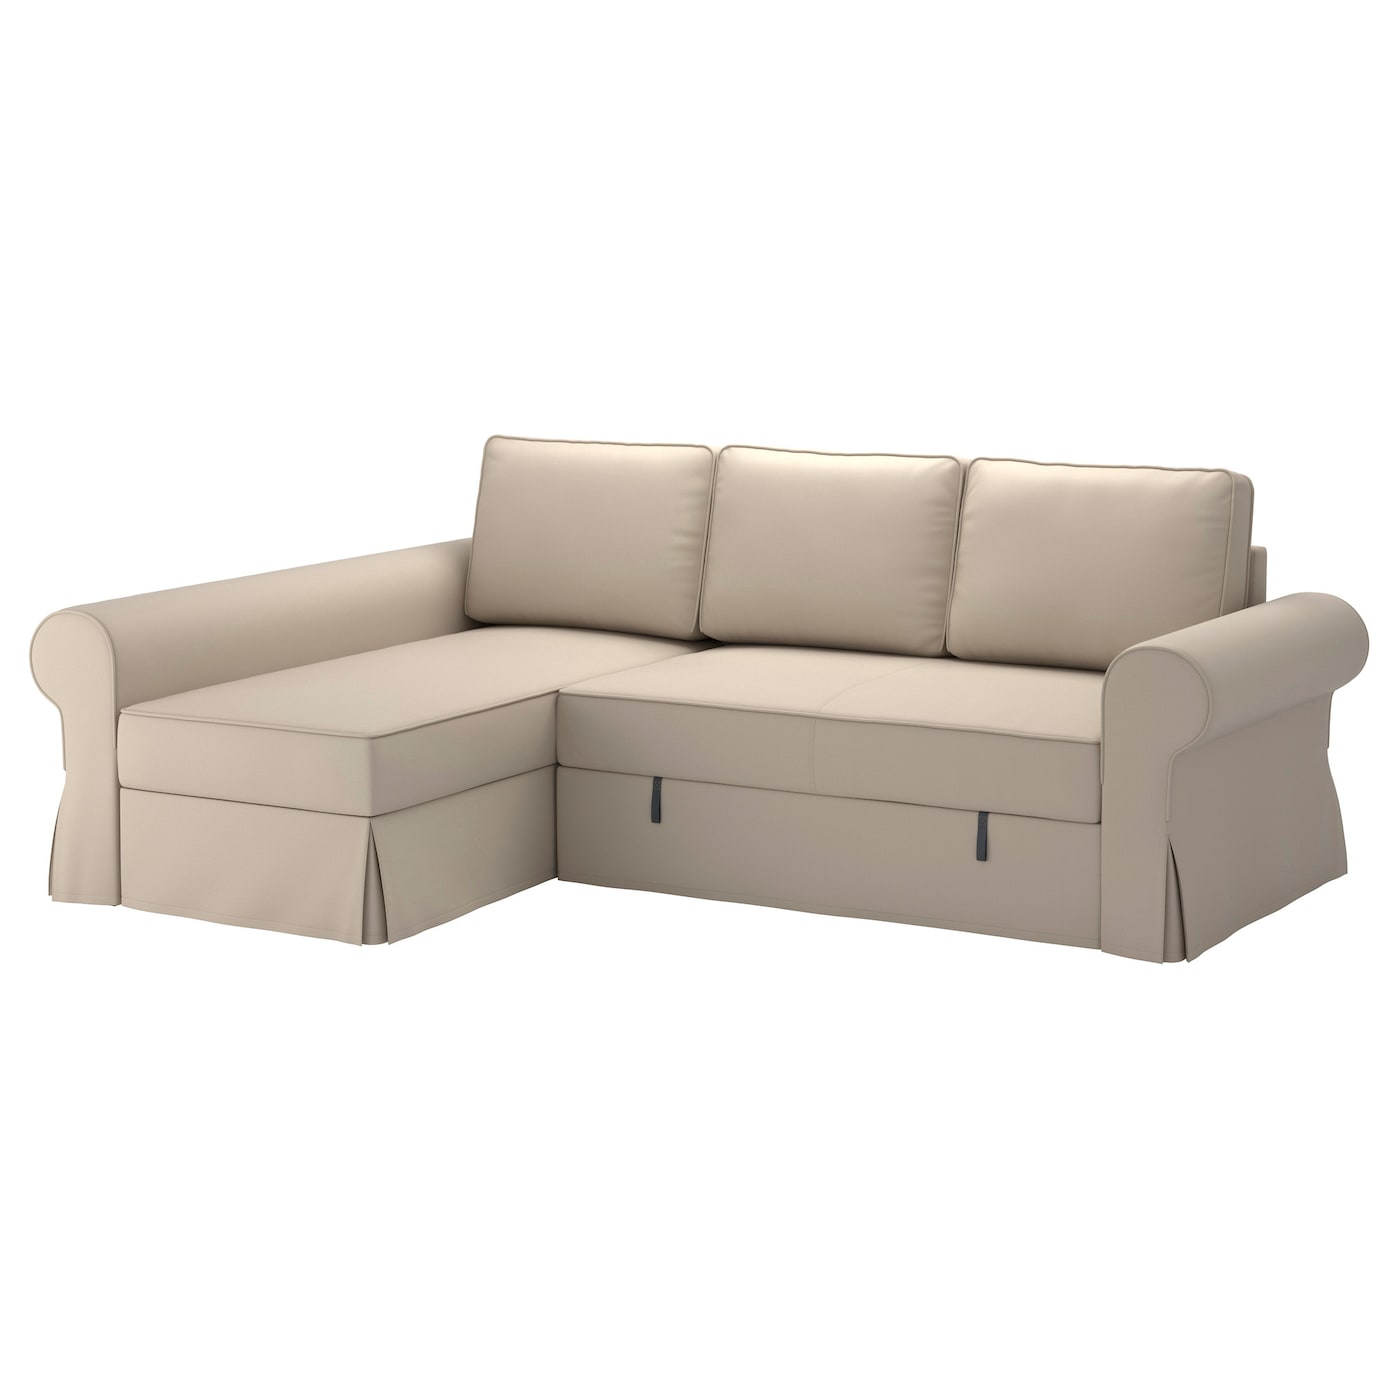 Backabro cover sofa bed with chaise longue ramna beige ikea Loveseat futon cover